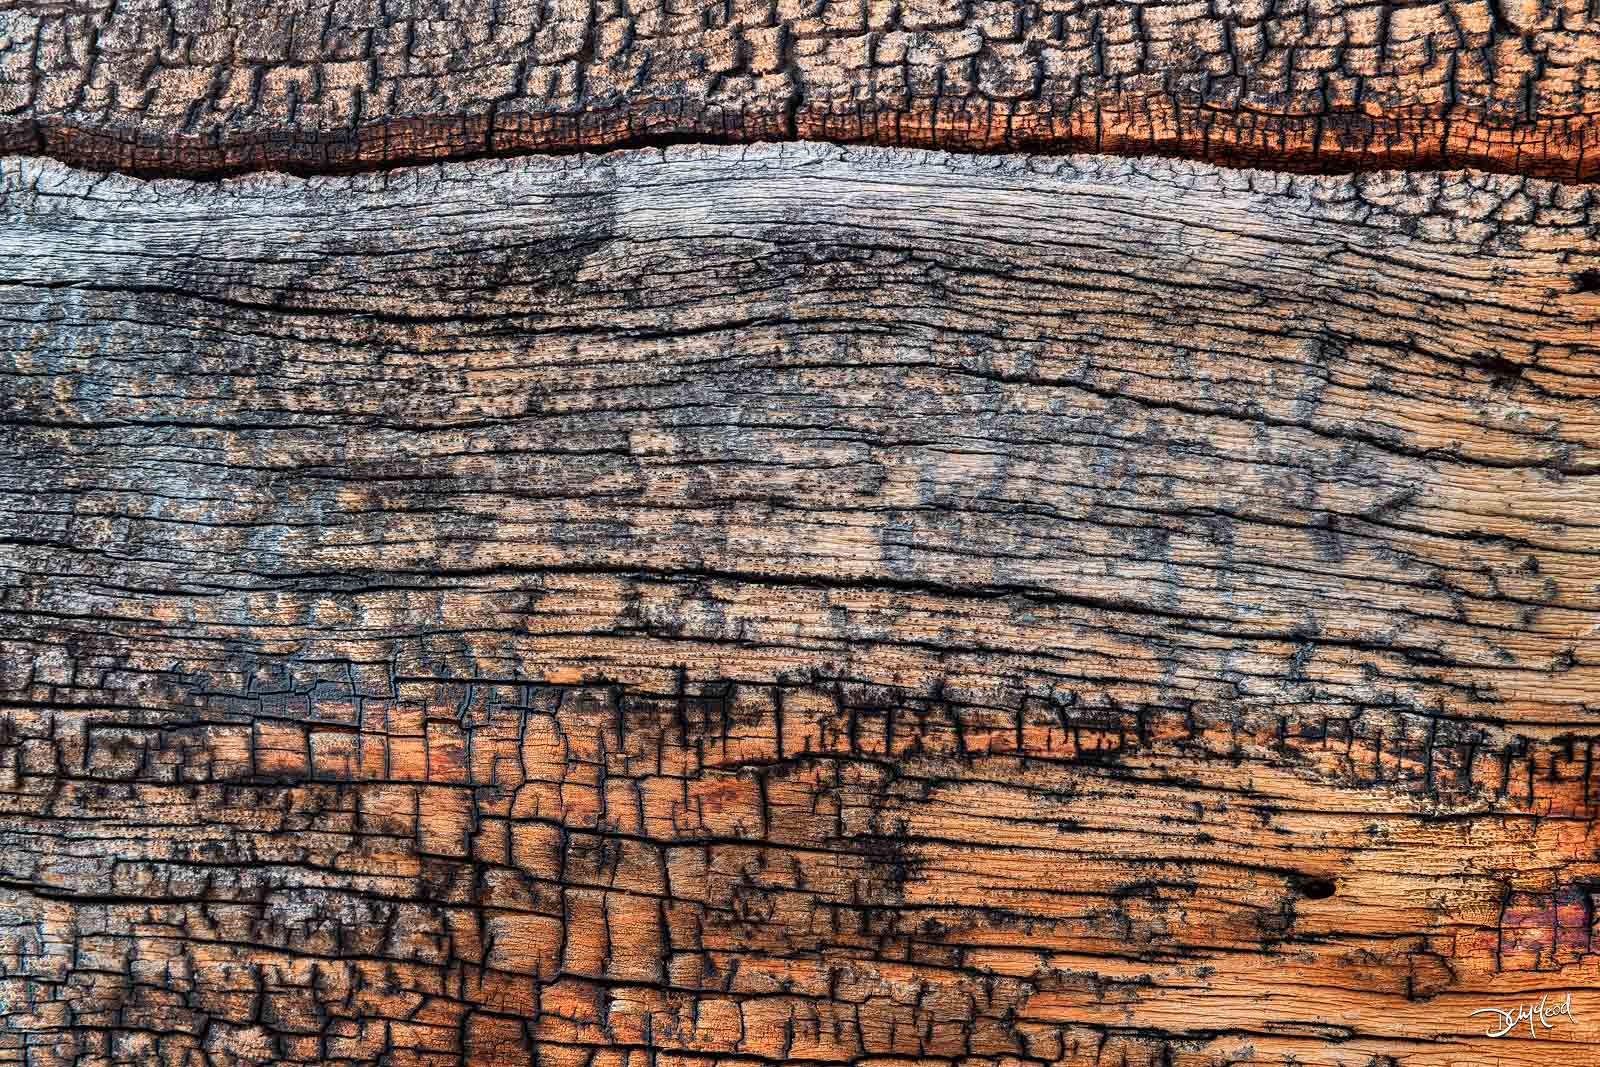 tree trunk, forests, banff, canada, beauty, texture, details, close, photo